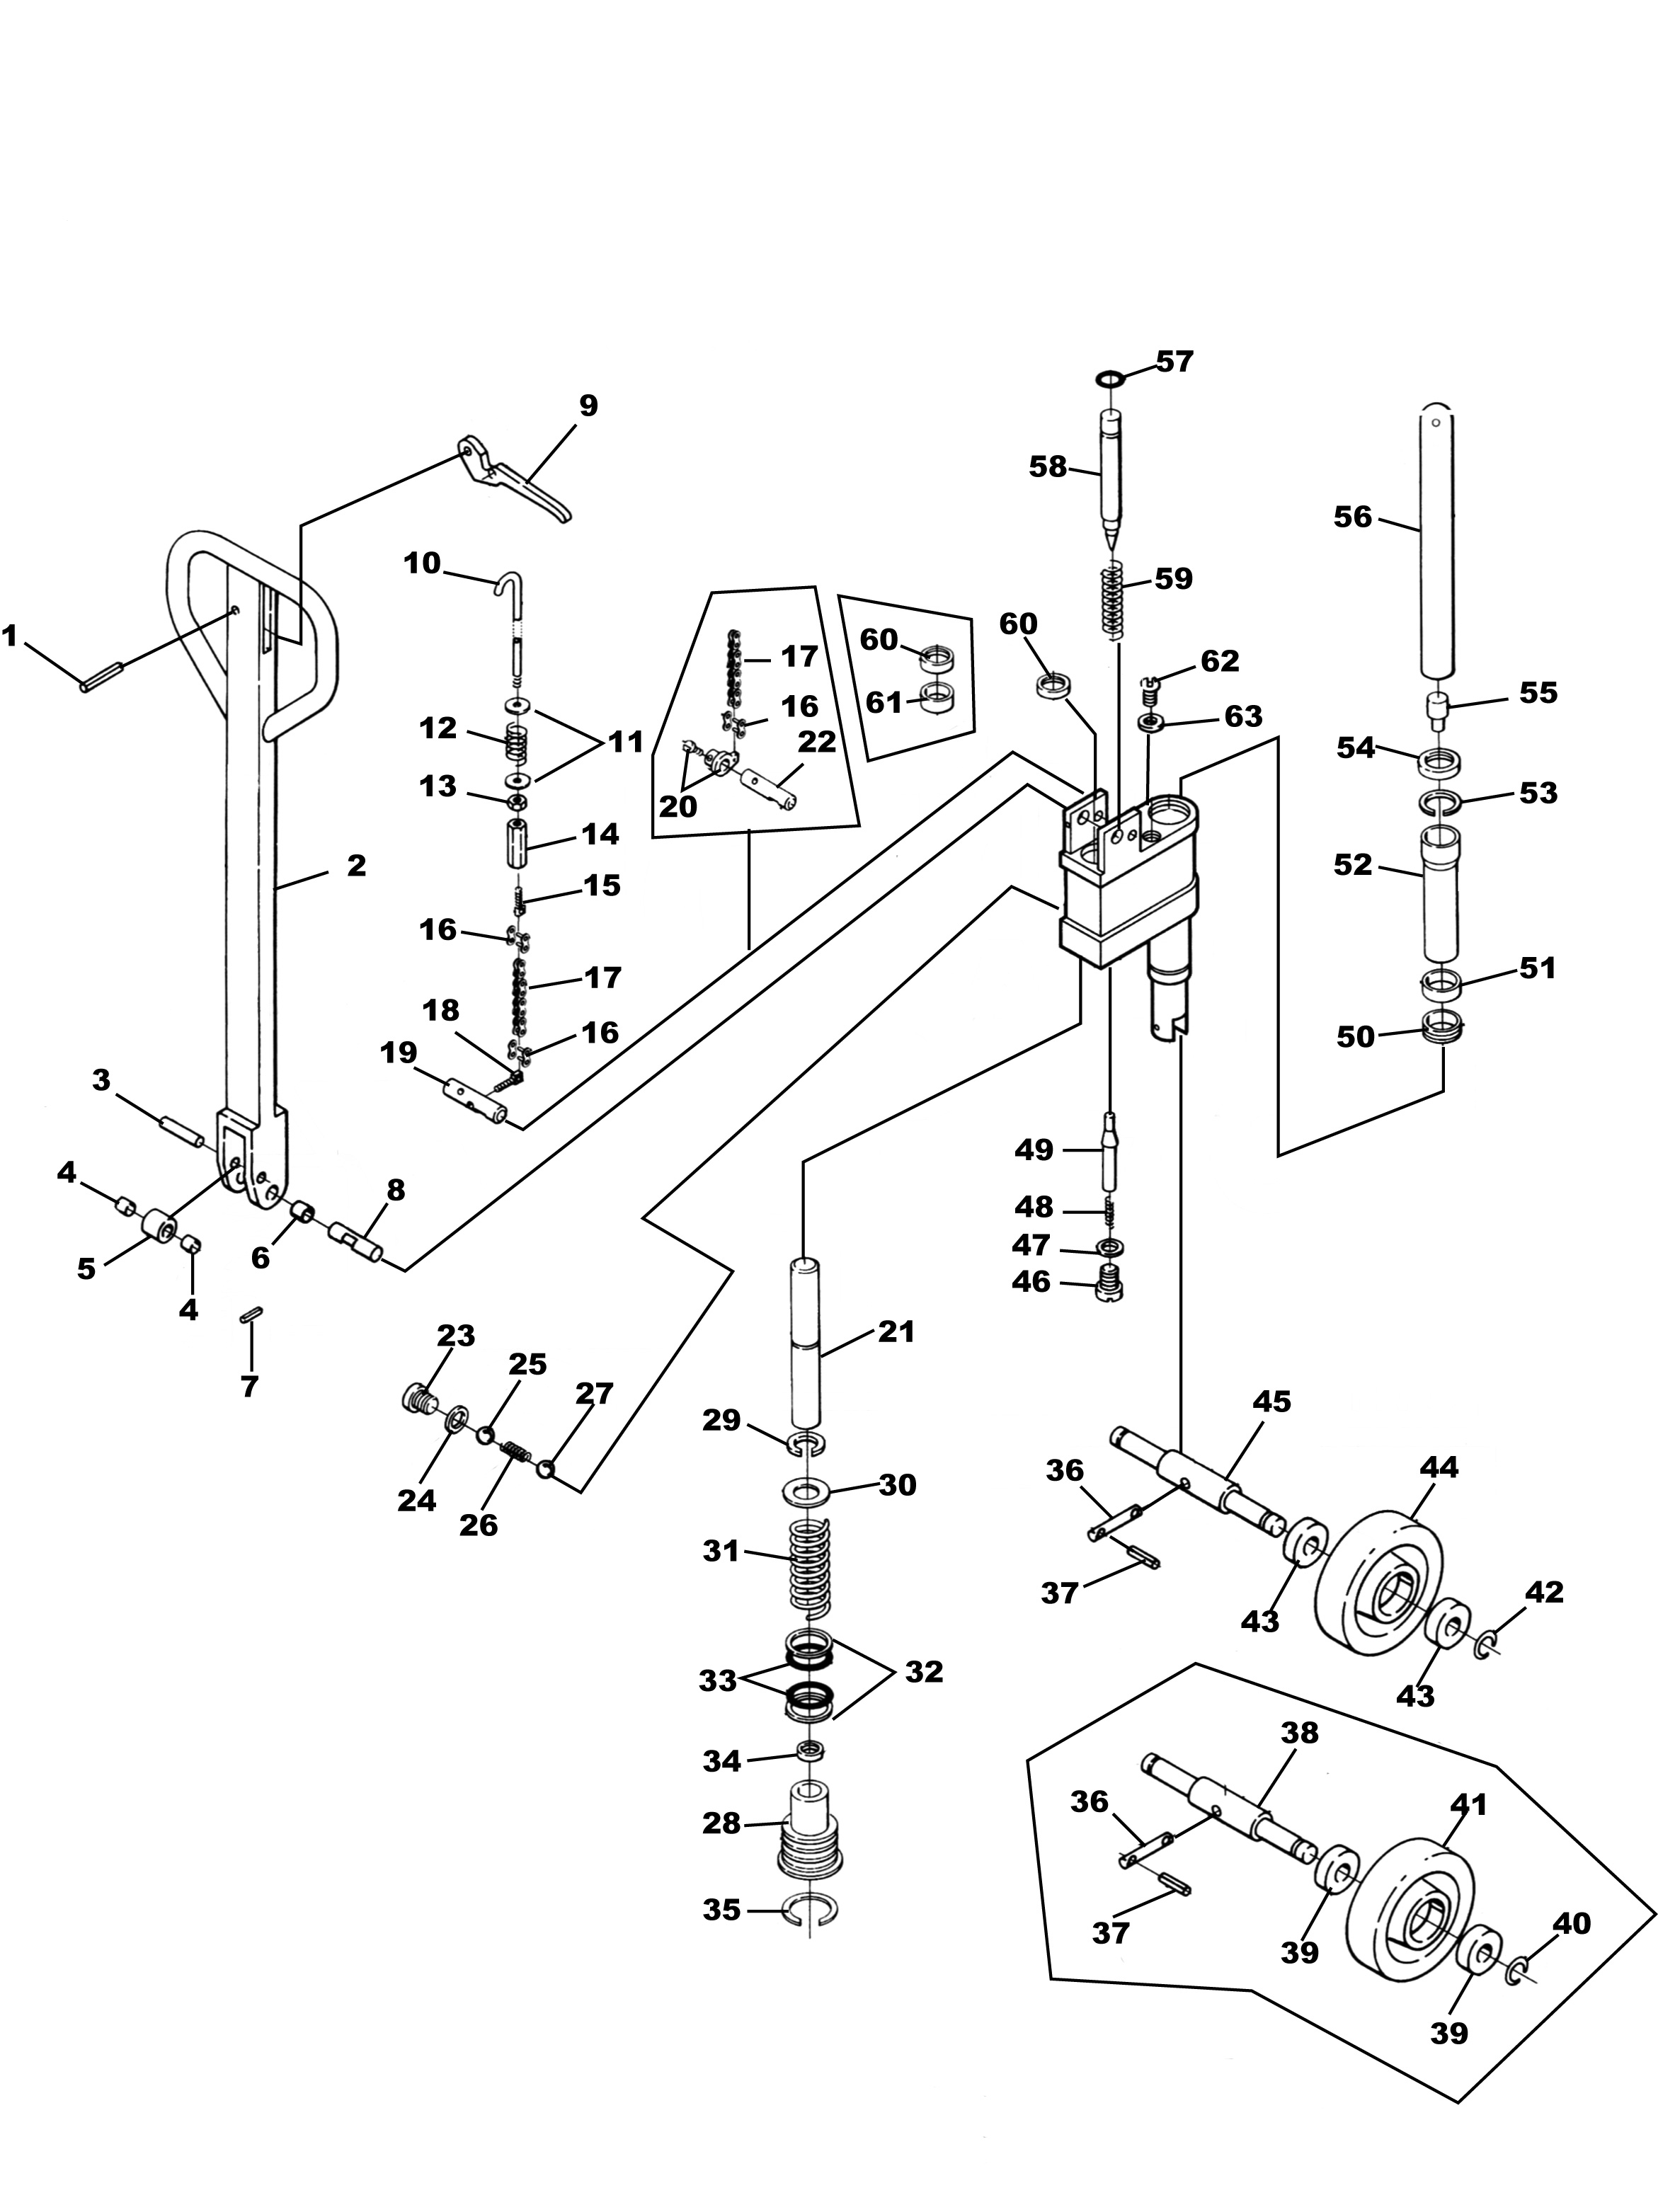 dayton pallet jack parts list within diagram wiring and engine